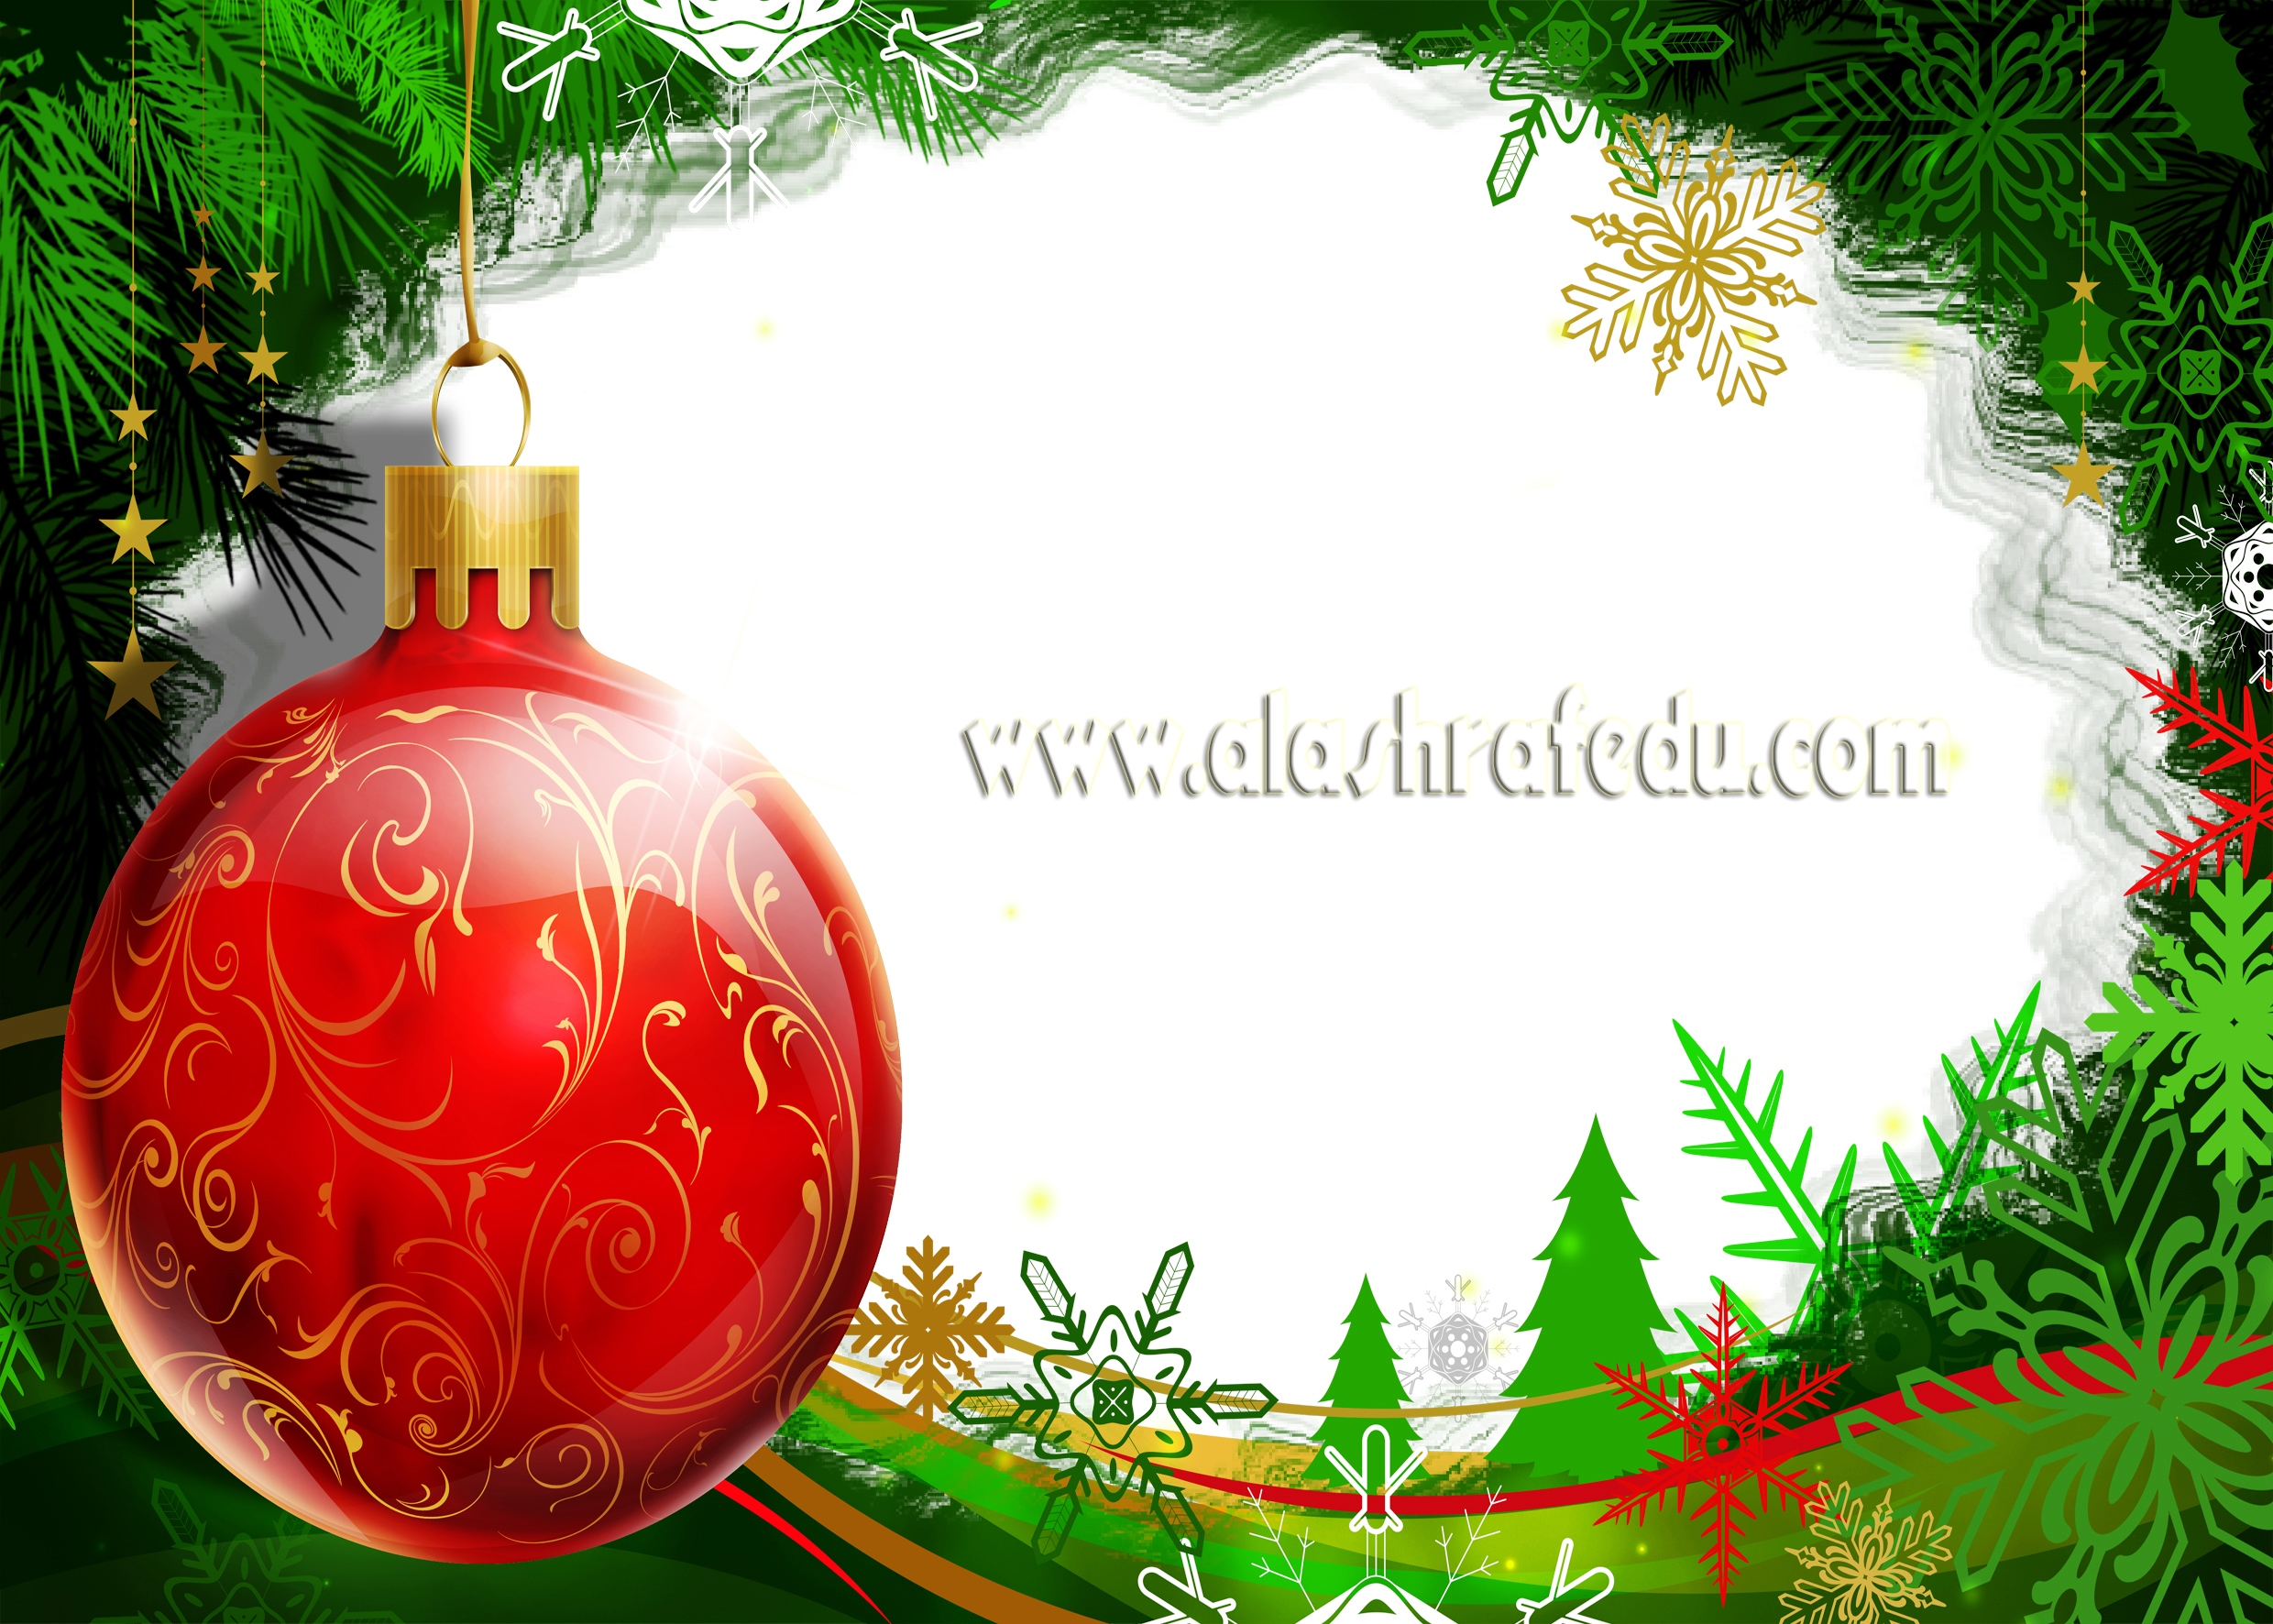 Christmas Transparent Frame With Christmas Ball 2019 www.alashrafedu.com1